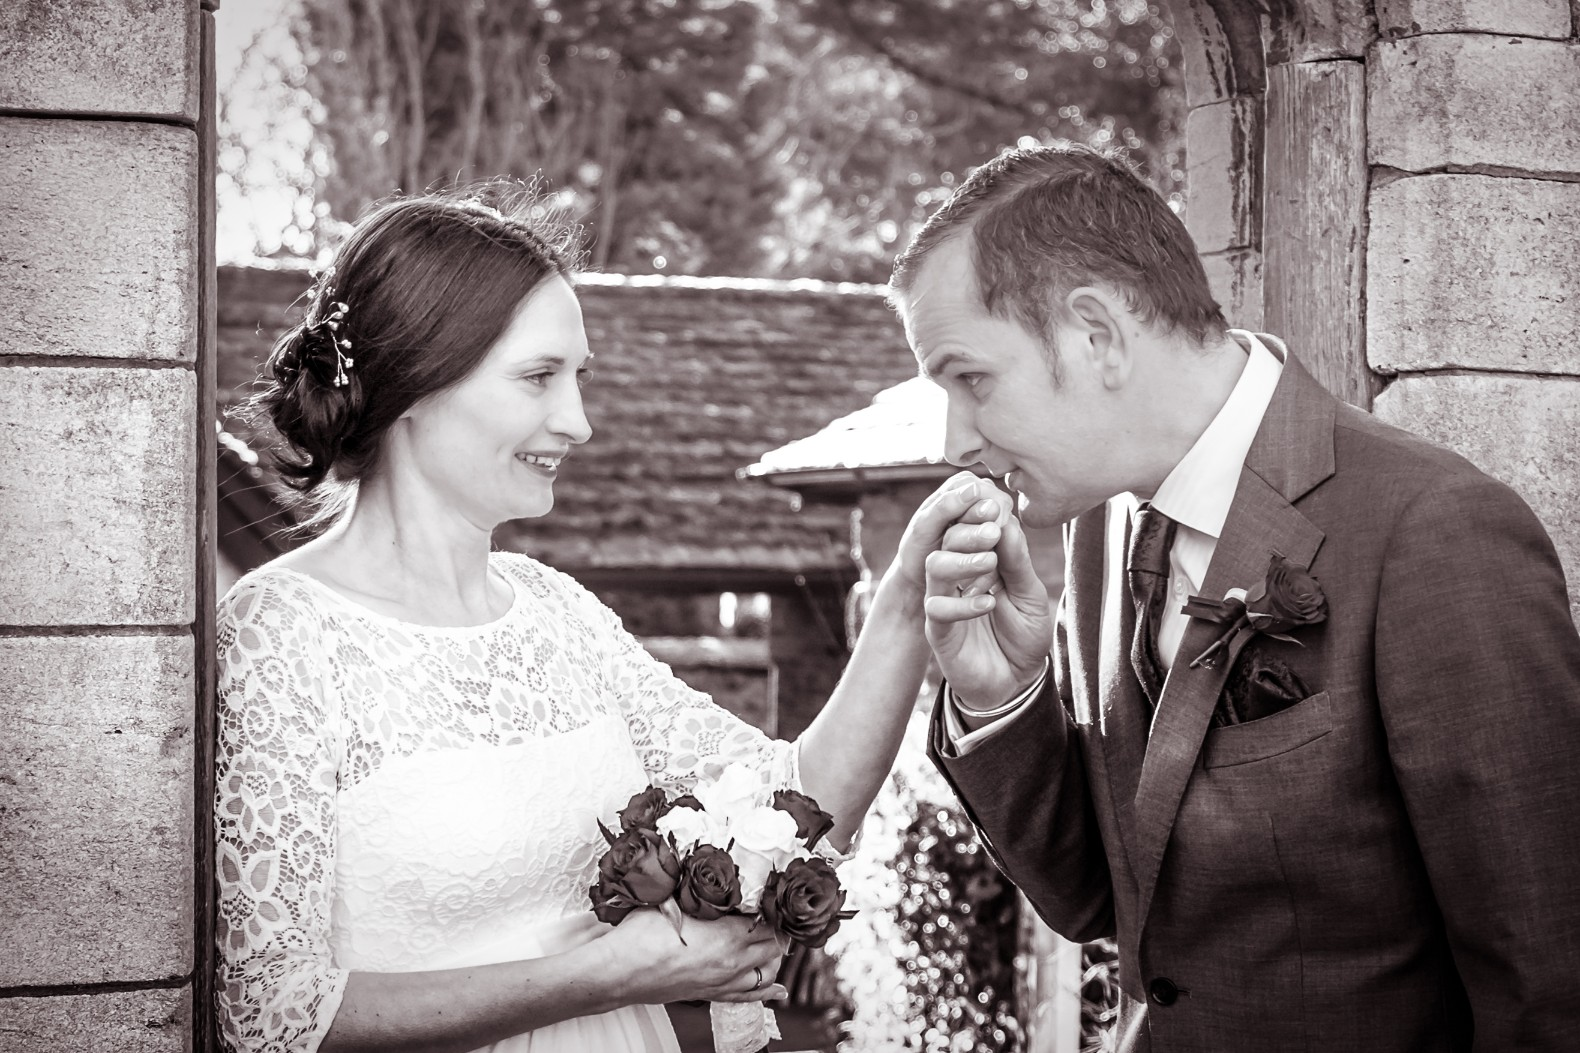 Mr&Mrs, just married, newlyweds, bride and groom, kettering, fotovida wedding photography